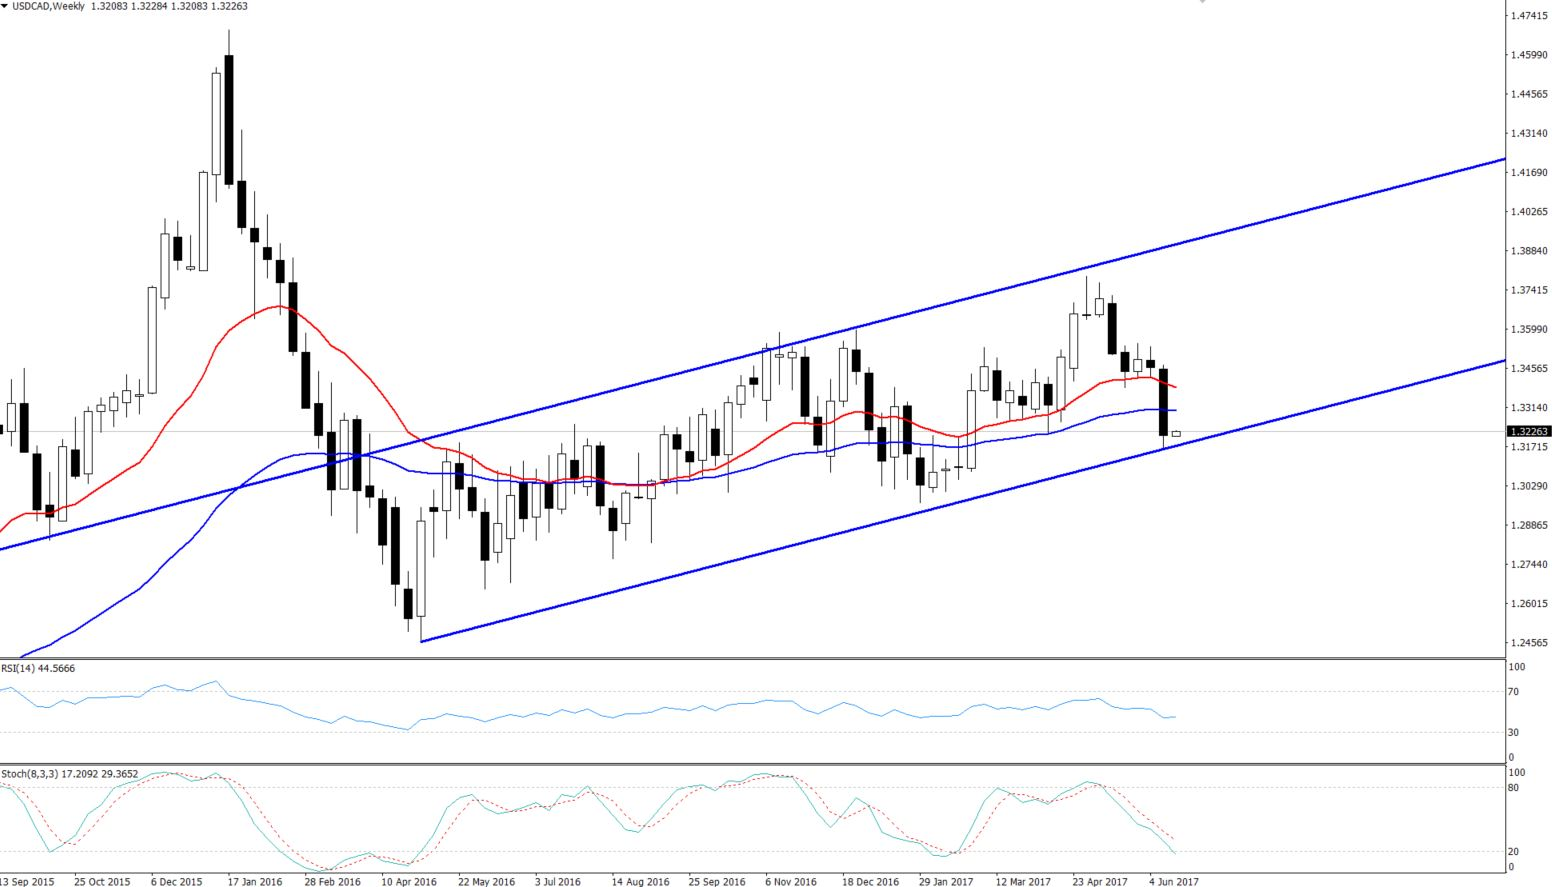 USDCAD - Bullish Channel On Weekly Chart